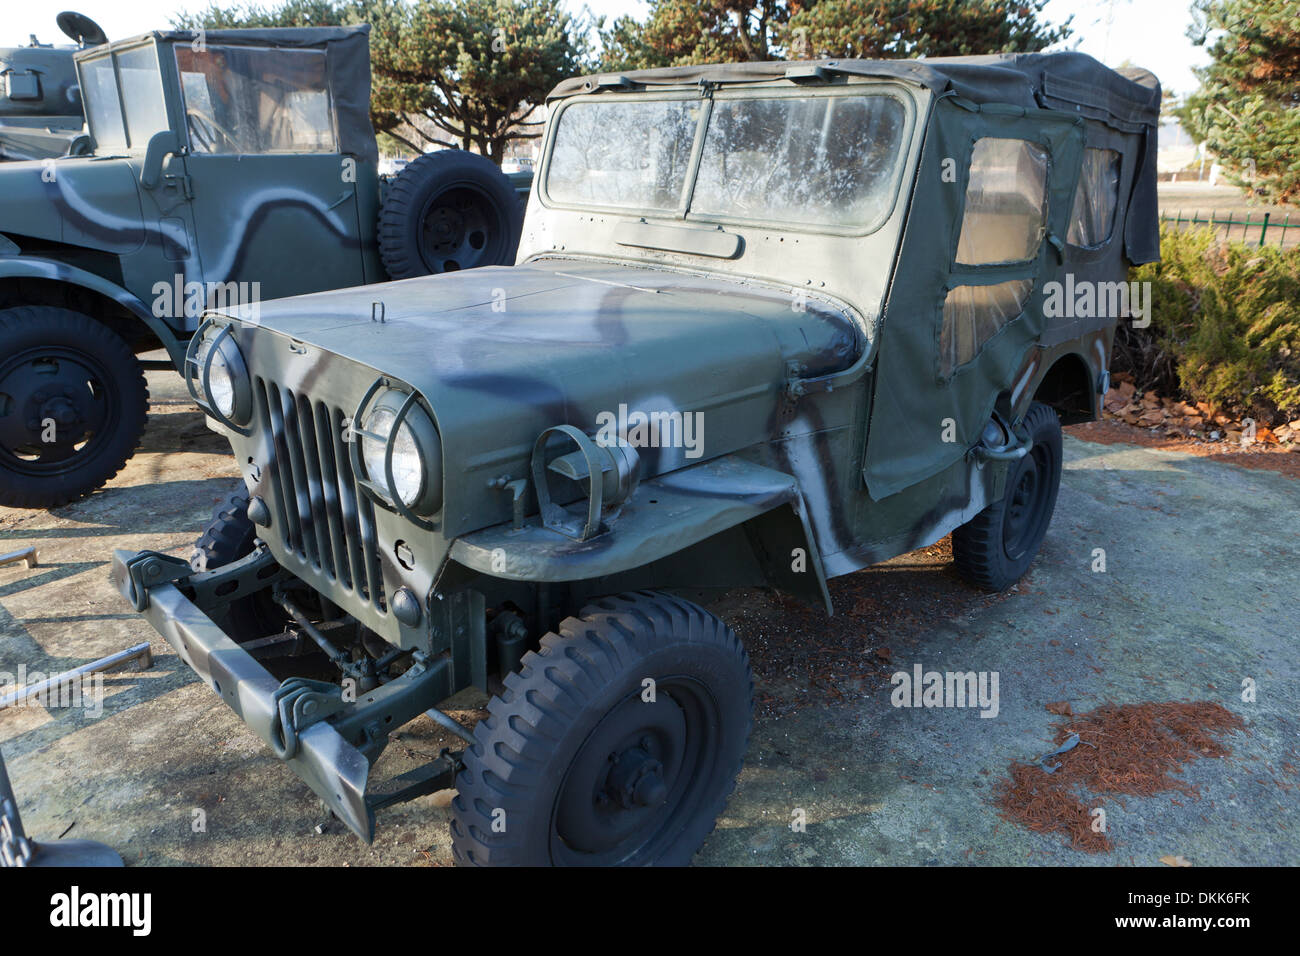 Jeep mb jeep : US military Willys MB Jeep Stock Photo: 63731799 - Alamy